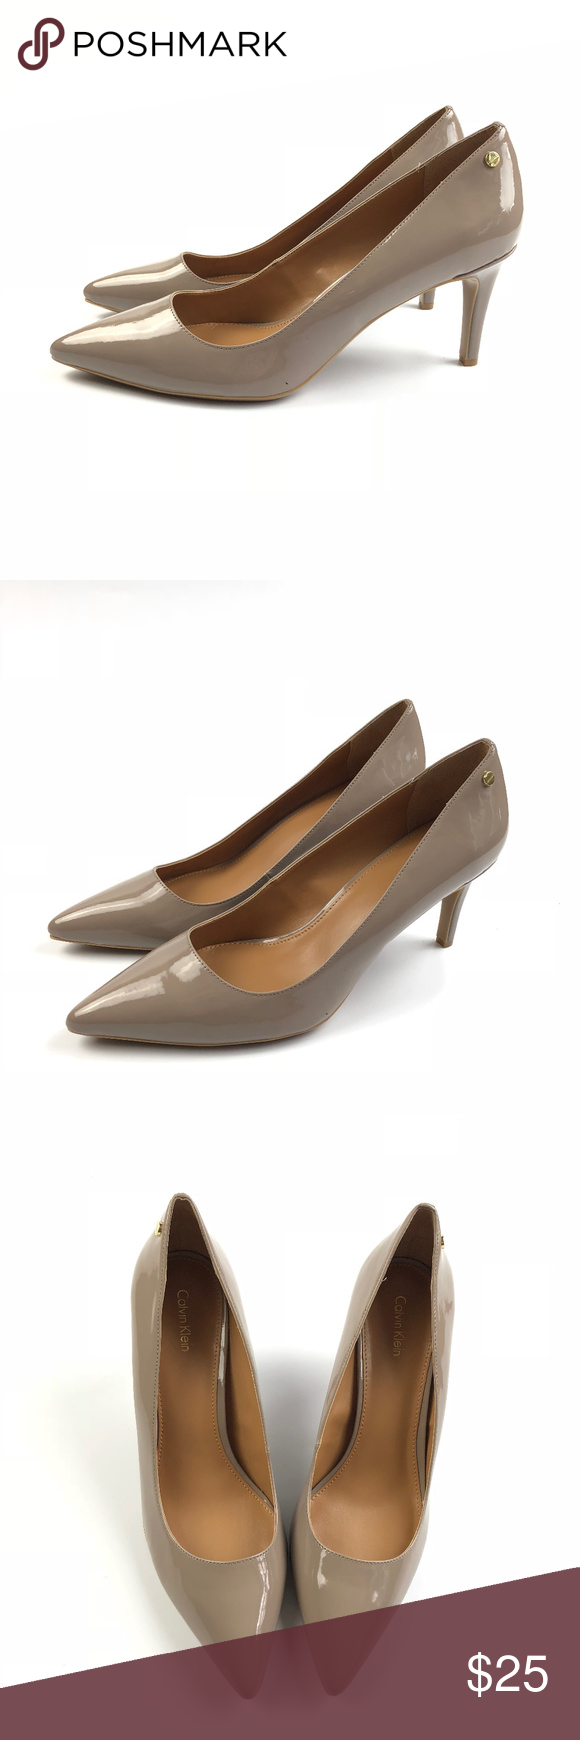 bf9039393c04 Calvin Klein Nilly Patent Taupe Nude Pumps Heels New without box. May have  been tried